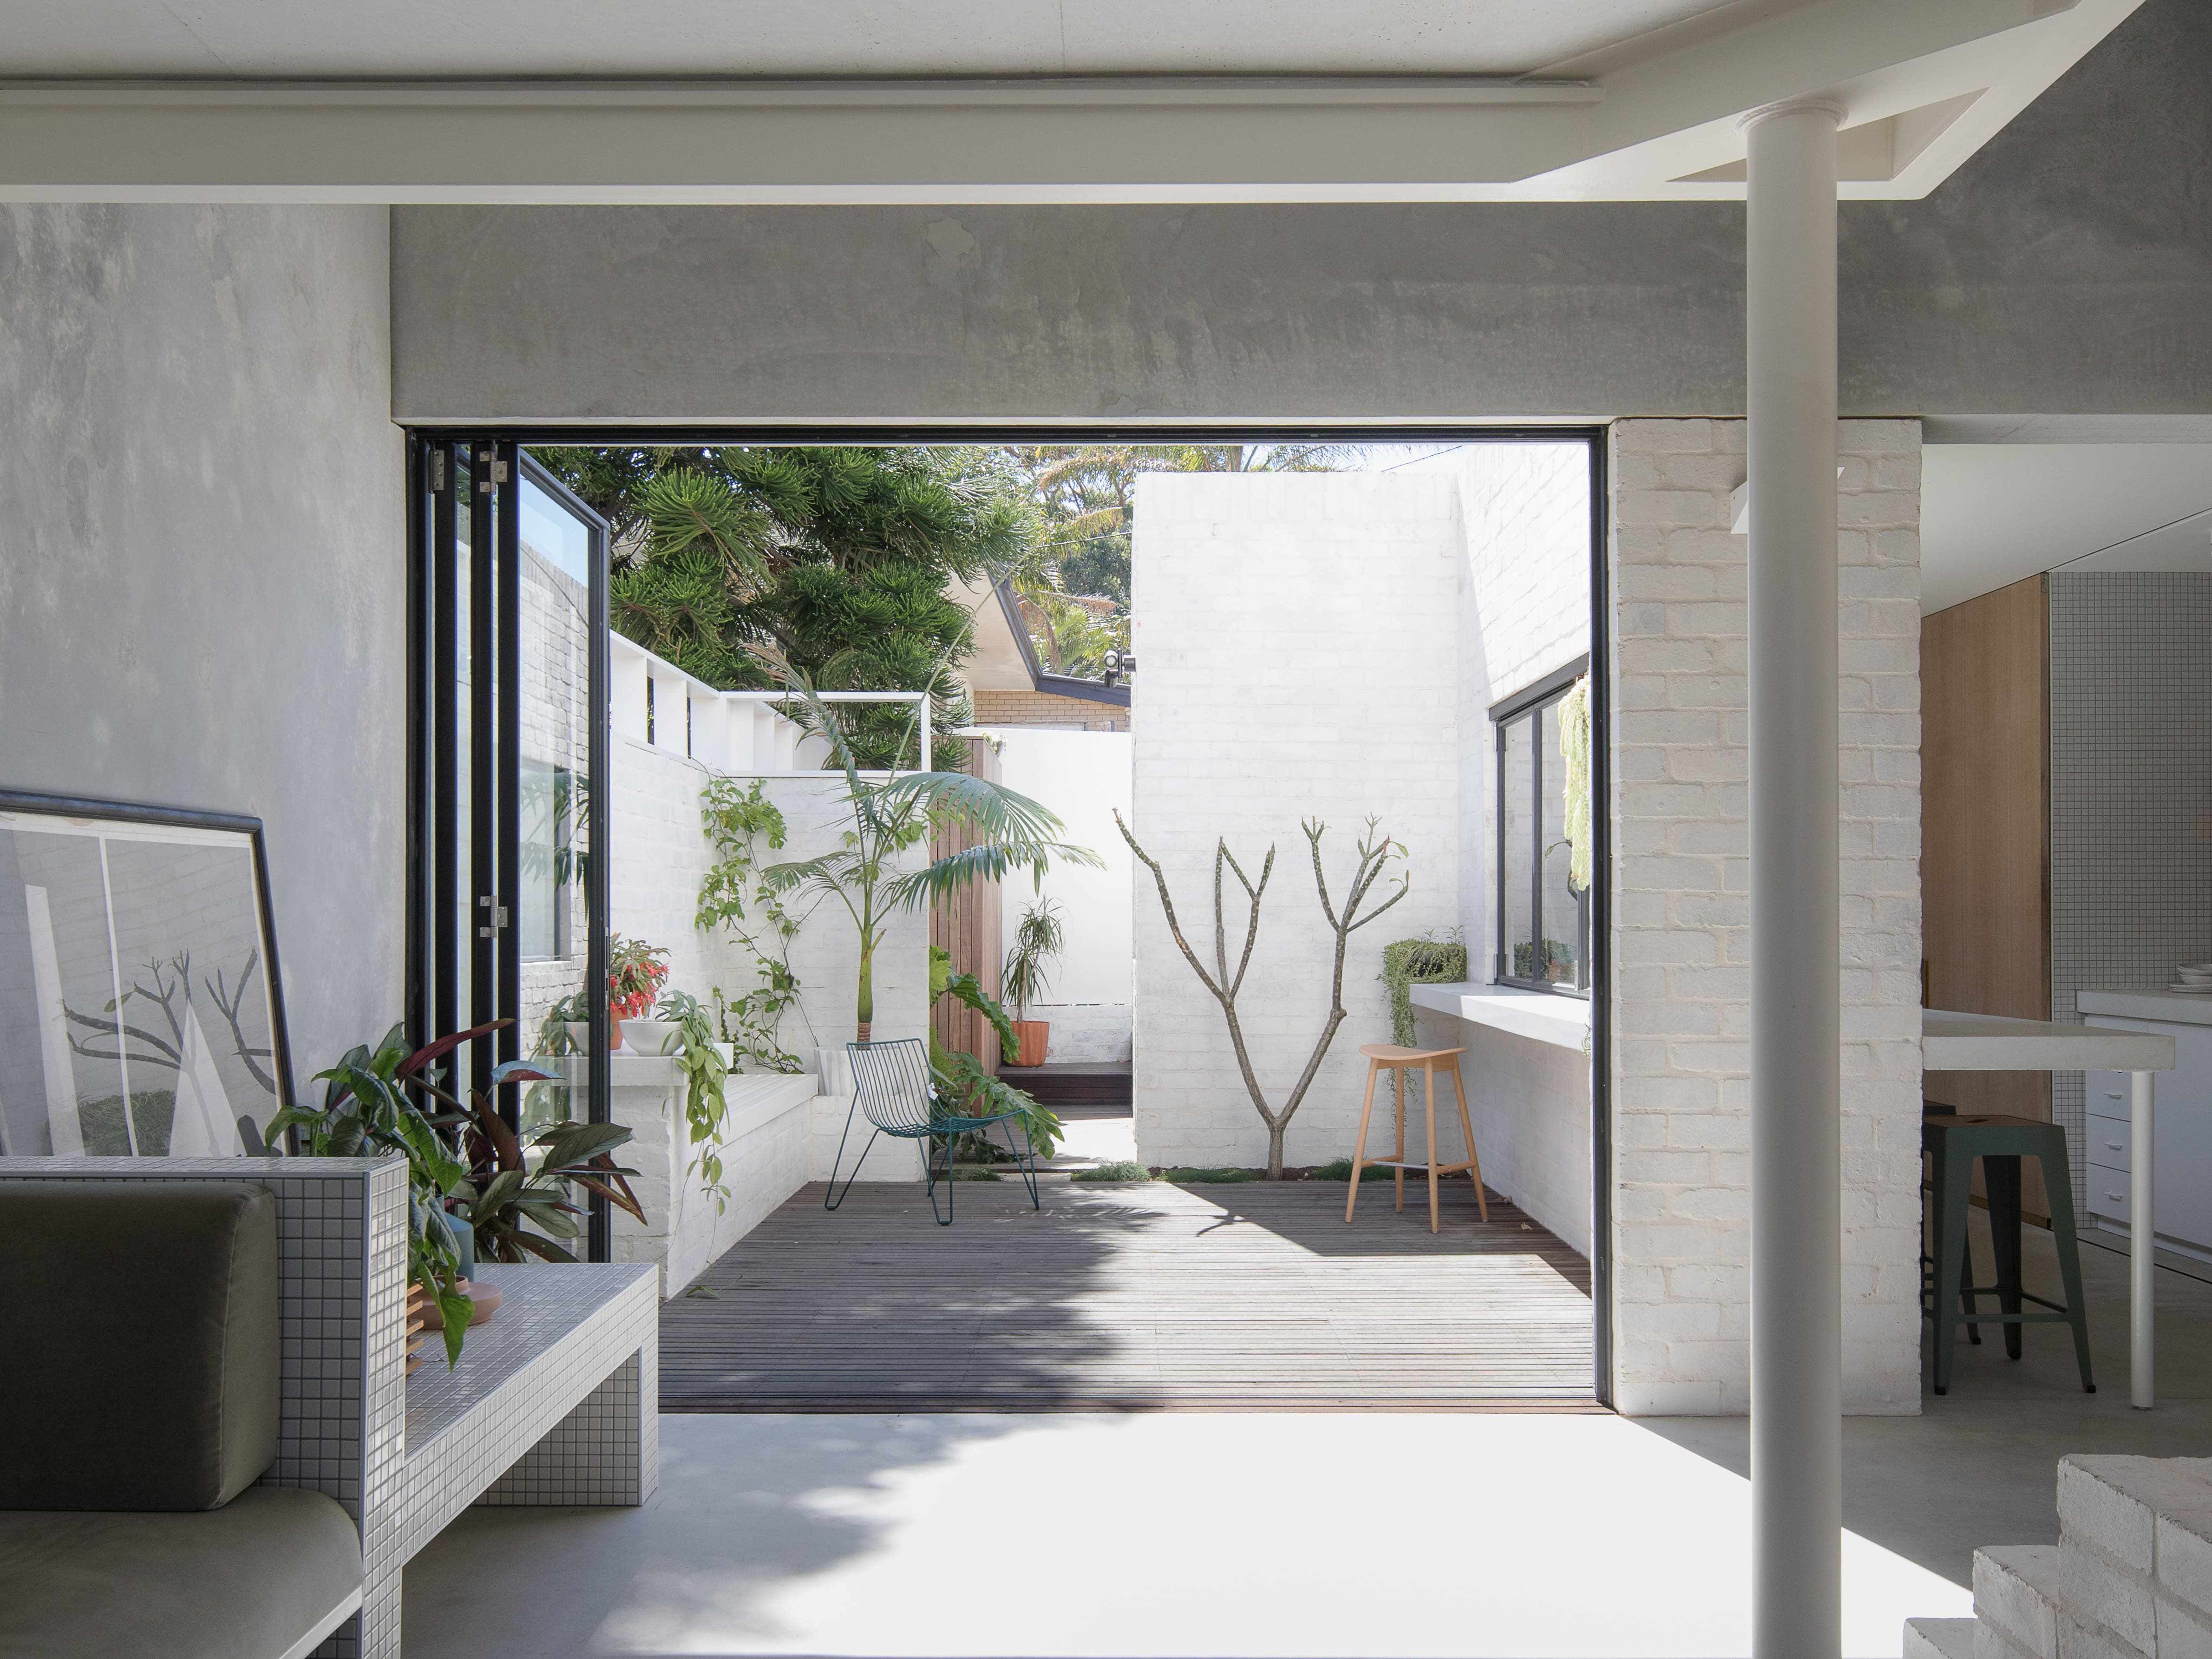 House A By Whispering Smith Local Australian Bespoke Residential Design Scarborough, Perth Image 10